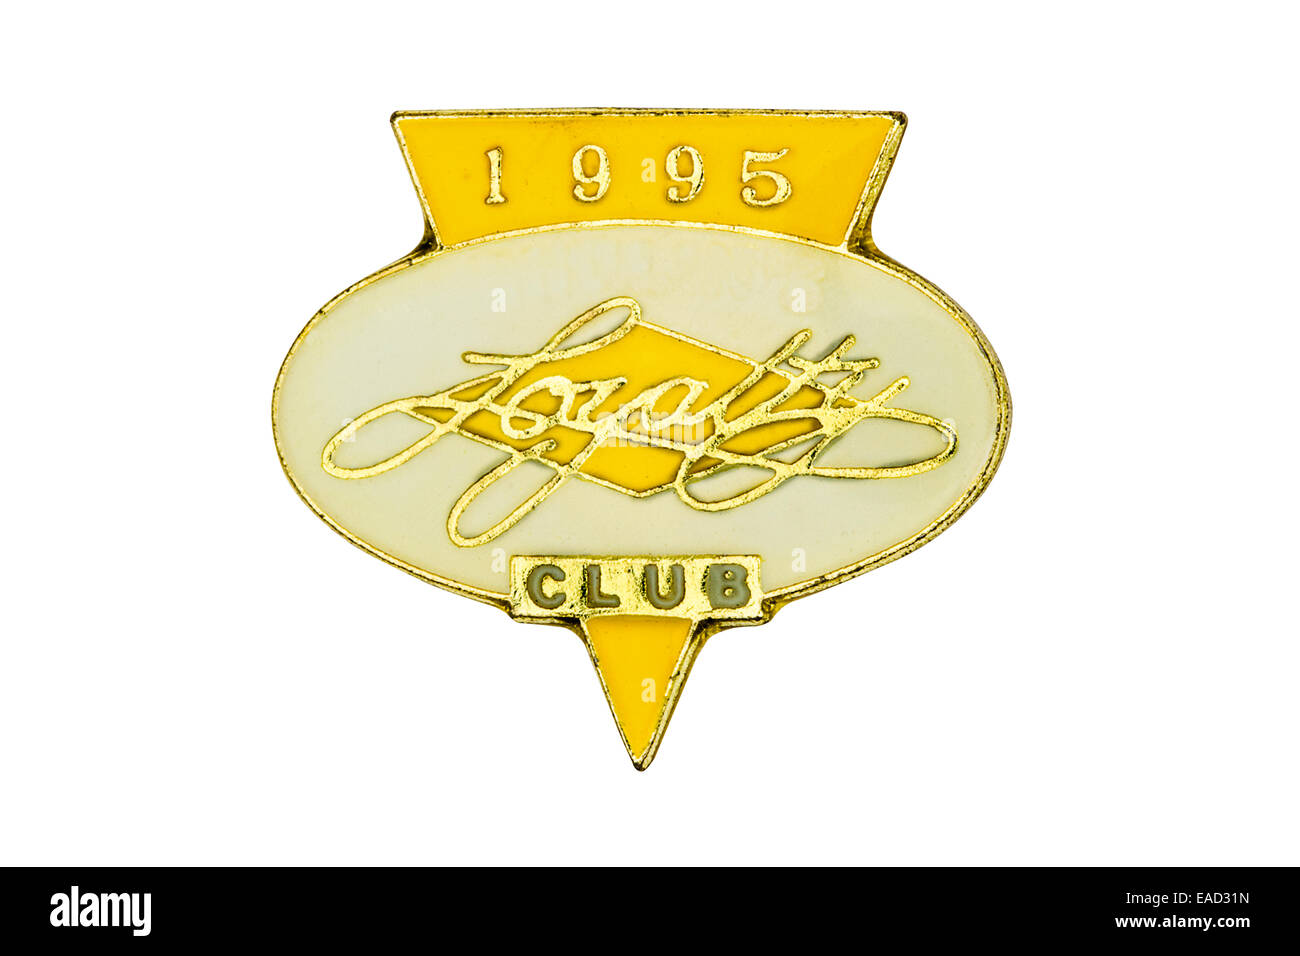 Butlins holiday loyalty  club badge (year 1995) on white background. - Stock Image